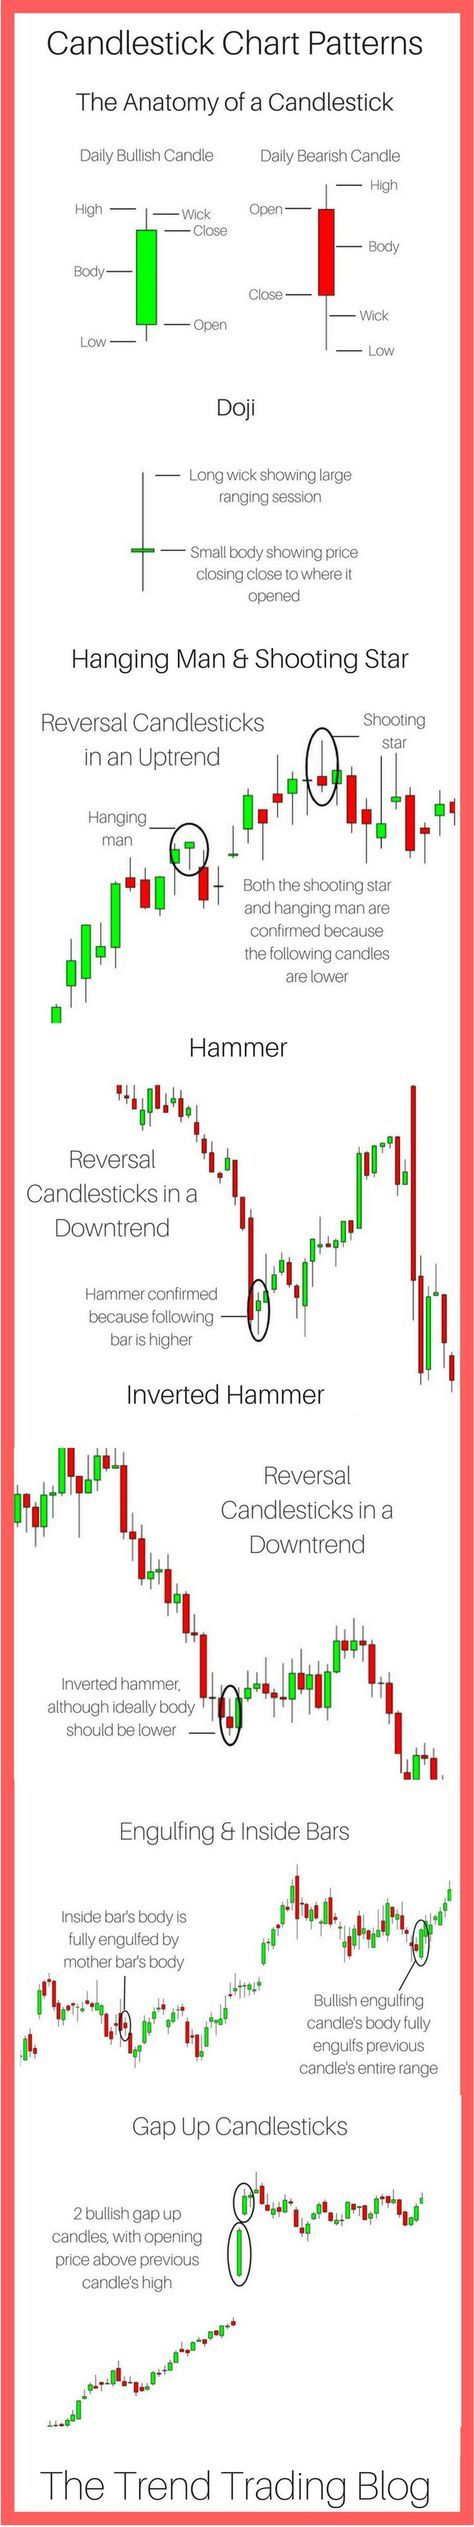 Candlestick Chart Patterns - The Trend Trading Blog